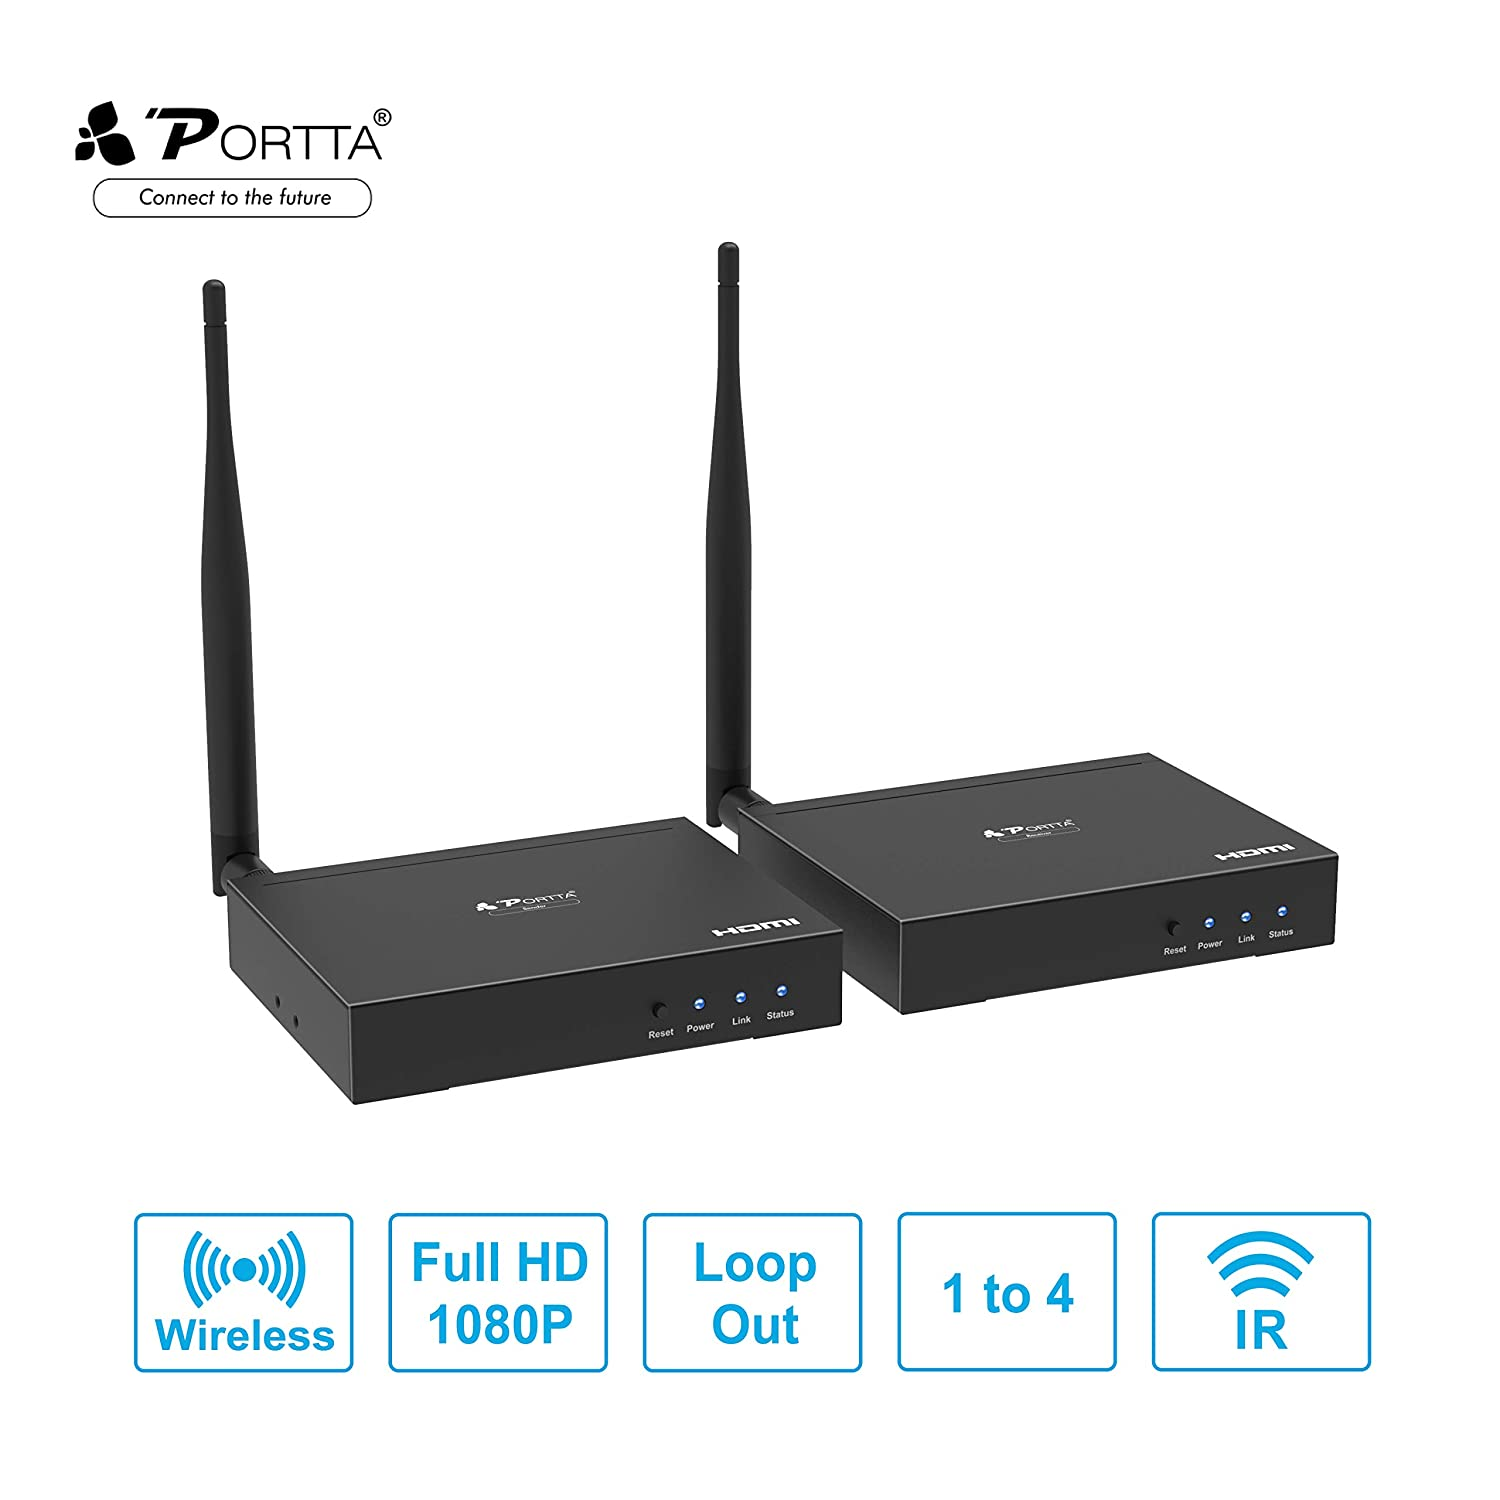 Wireless HDMI Sender and Receiver Portta Wireless HDMI Extender Extension Adapter 100m 328ft Support HD W//IR LOOP OUT 1080P HDCP1.3 Point-to-Point//Multicast transmission up to 4 Receivers